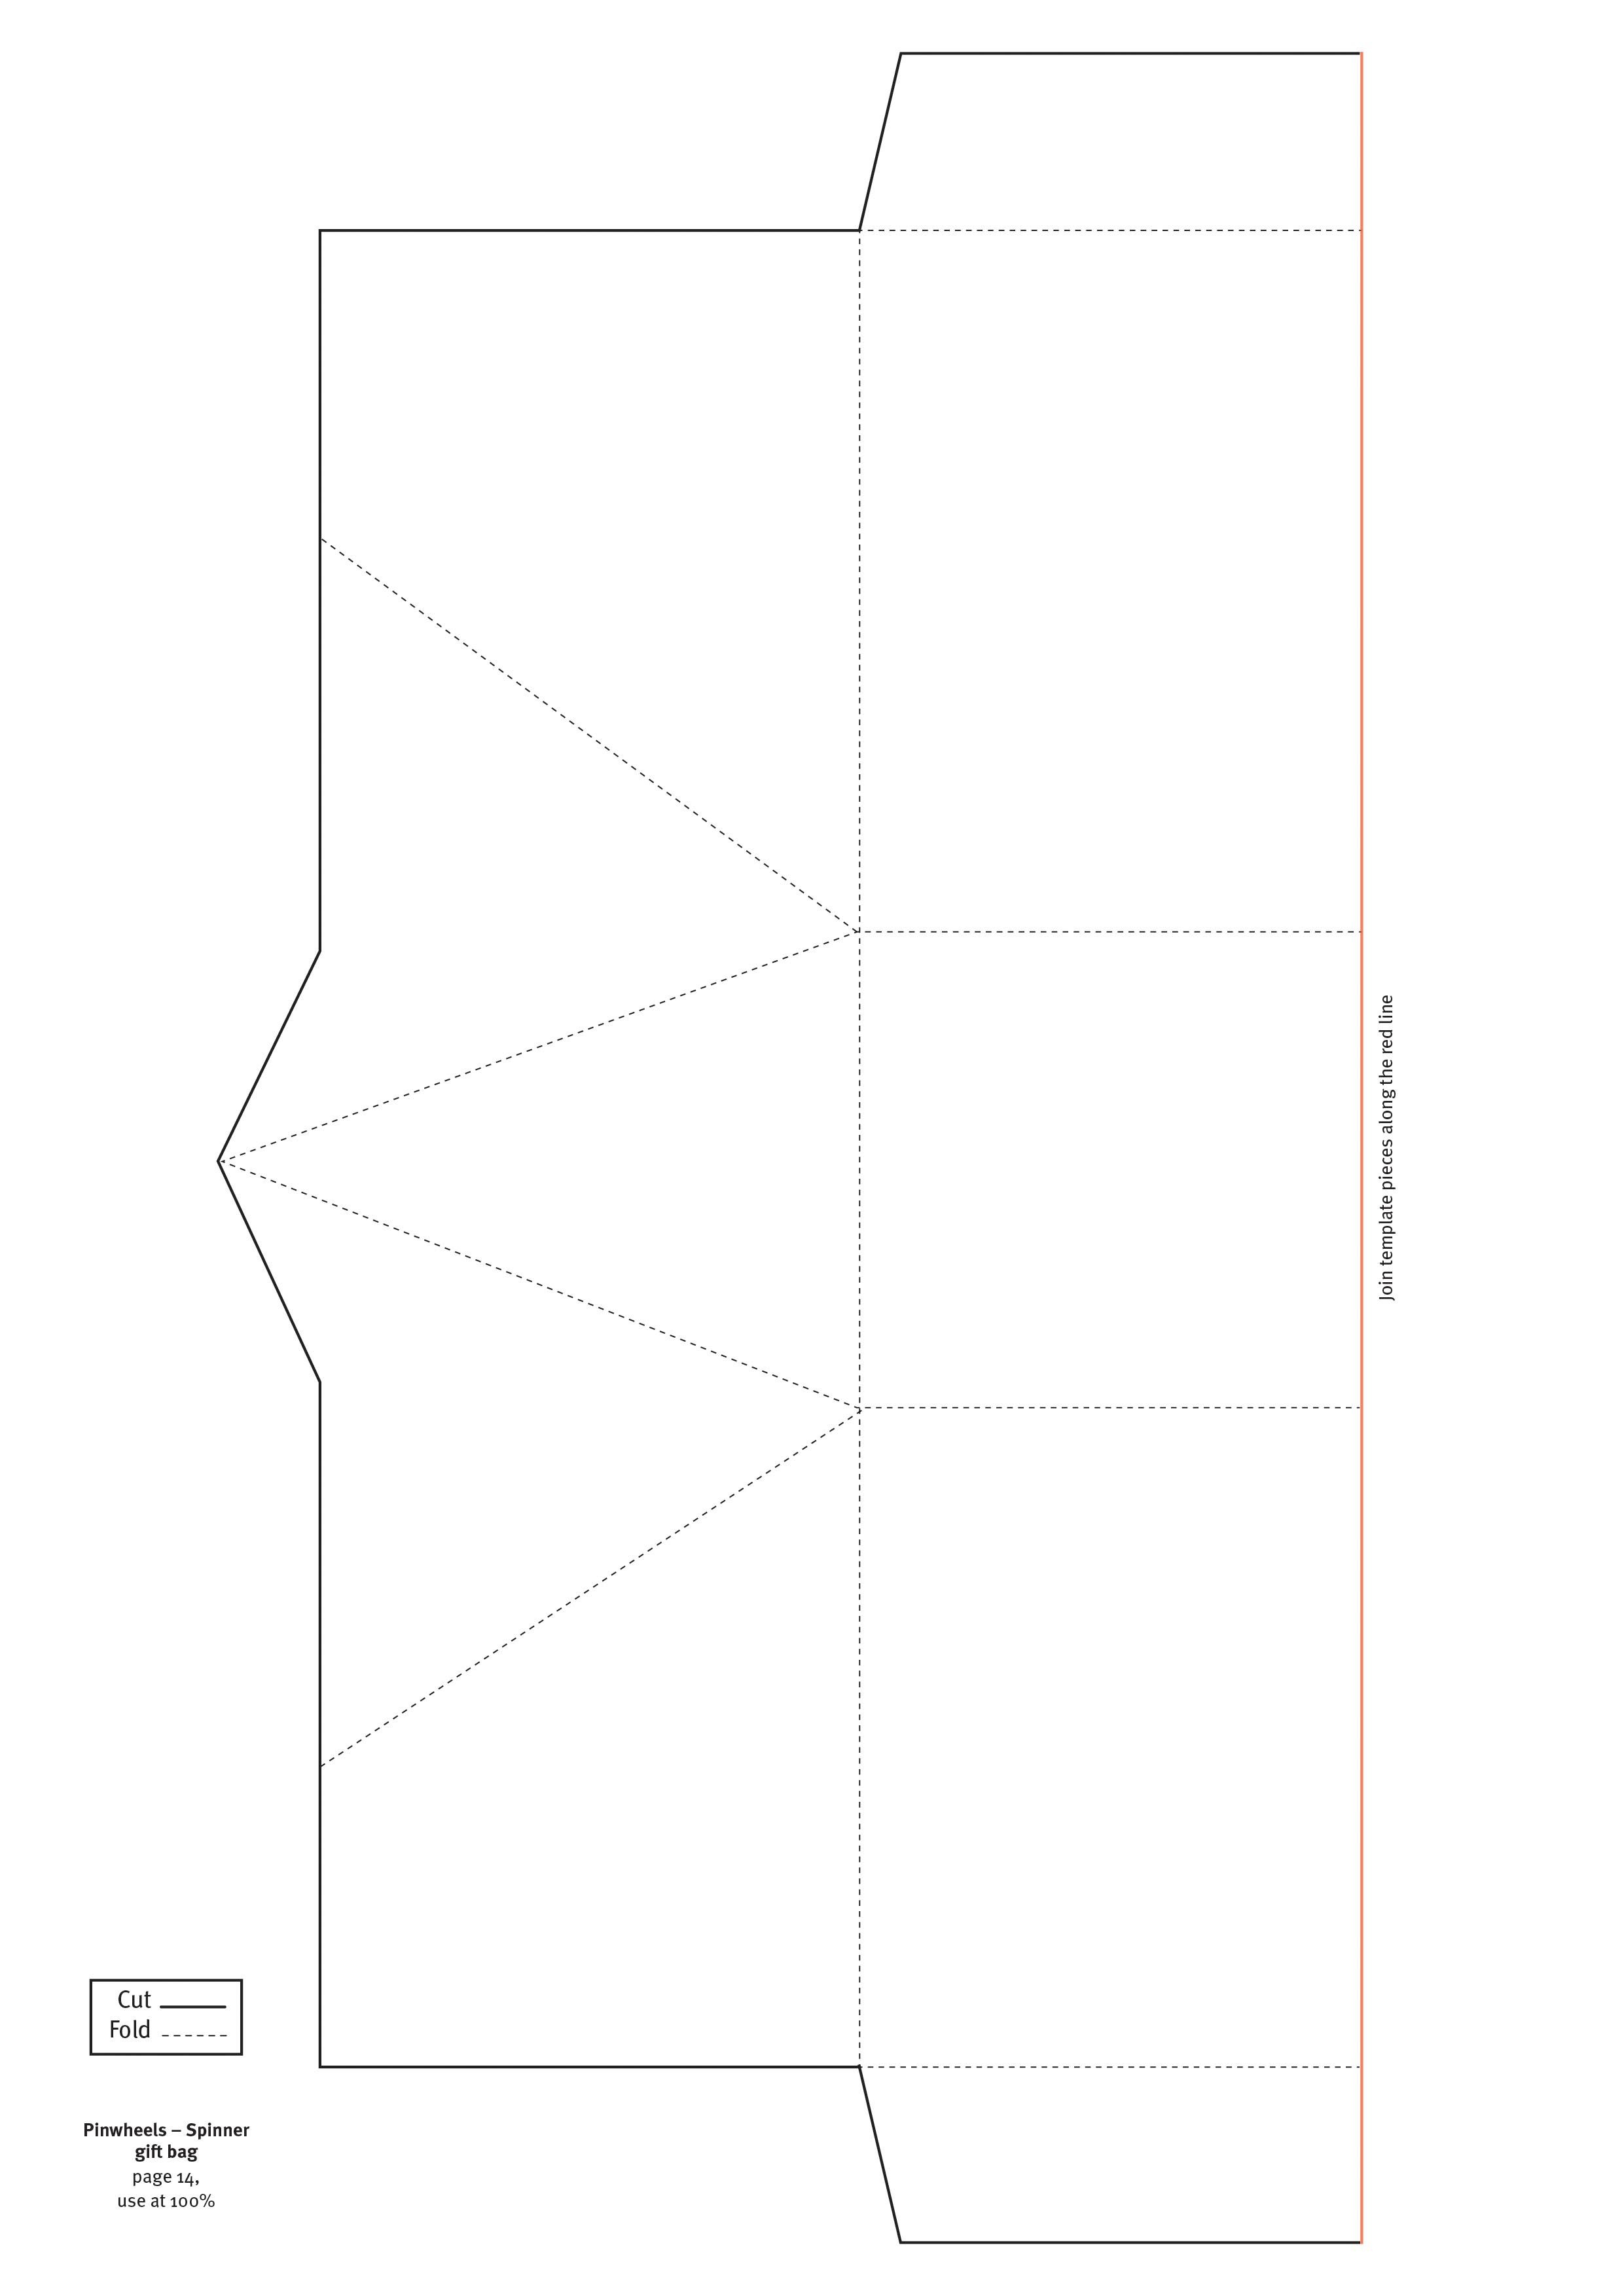 Free Printable Templates From Papercraft Inspirations 154 | Cards - Free Printable Templates